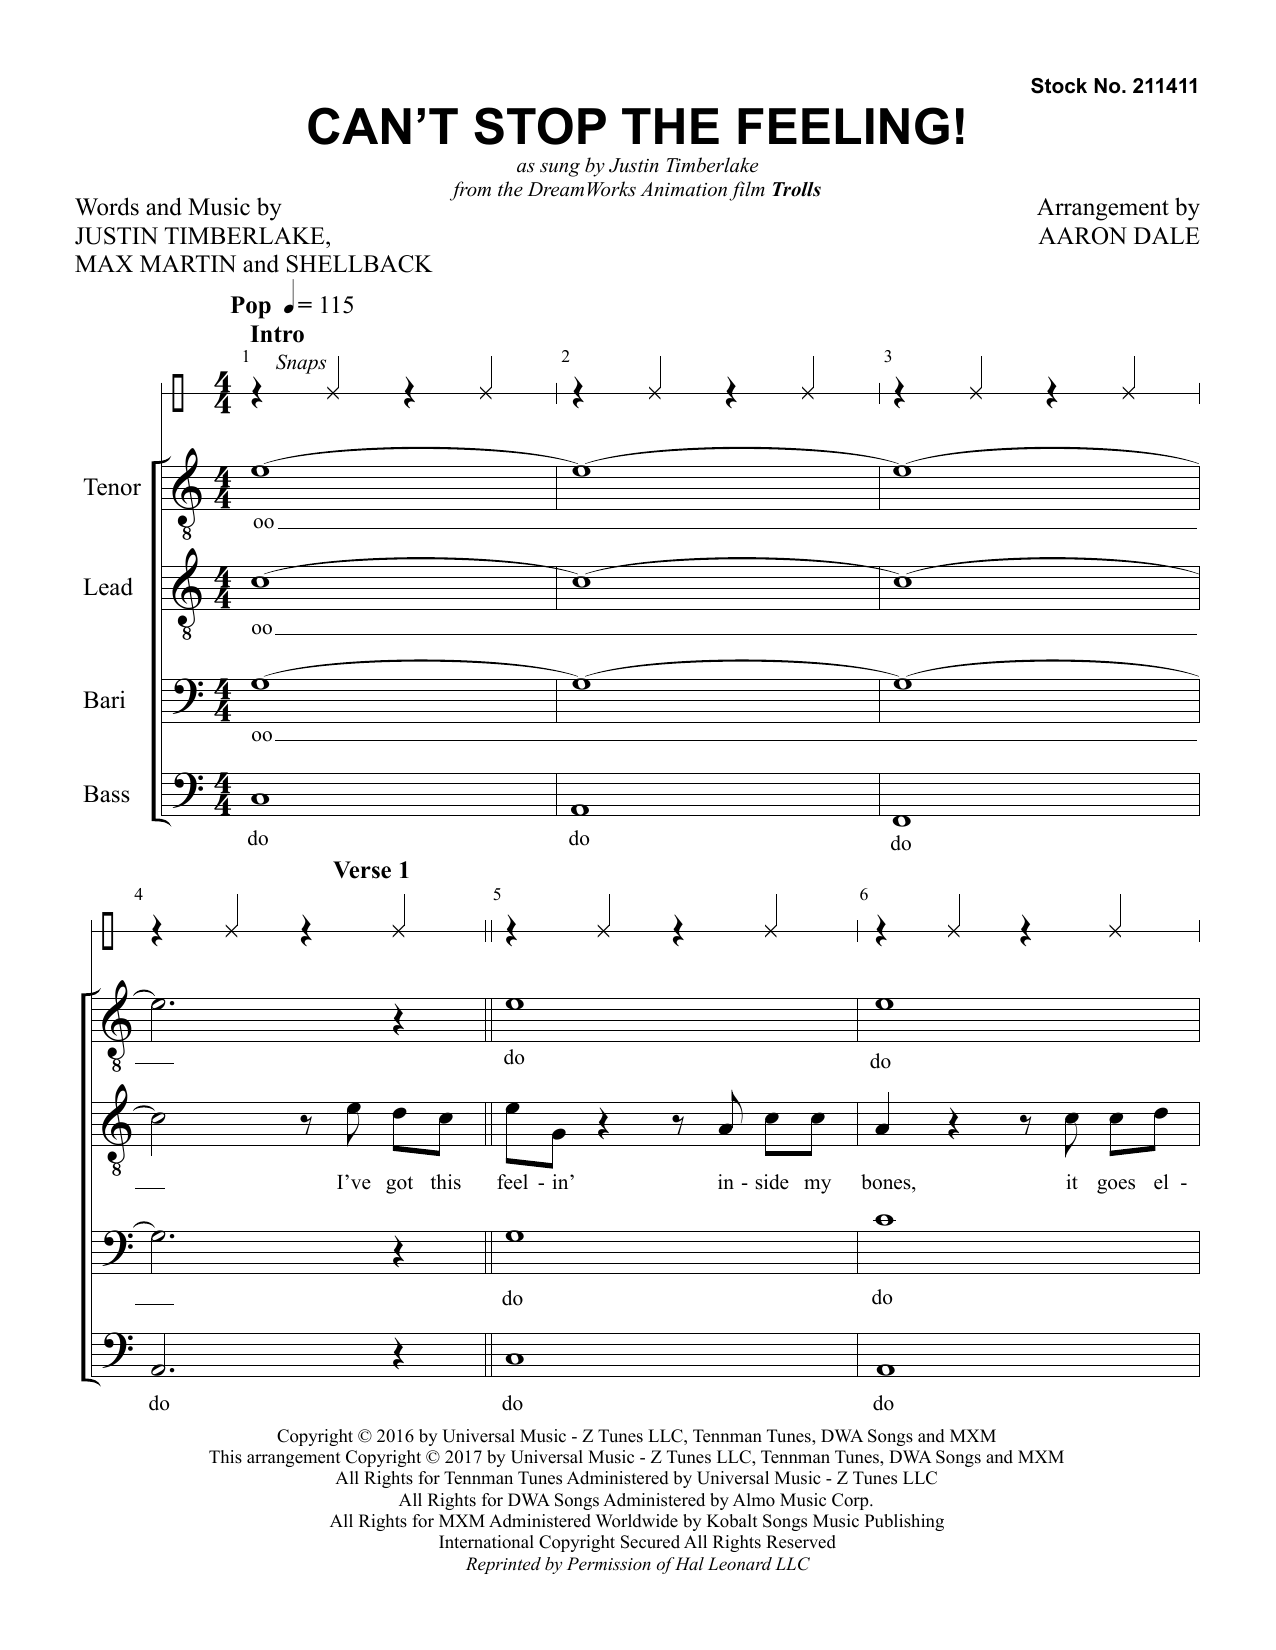 Can't Stop the Feeling! (arr. Aaron Dale) Partition Digitale